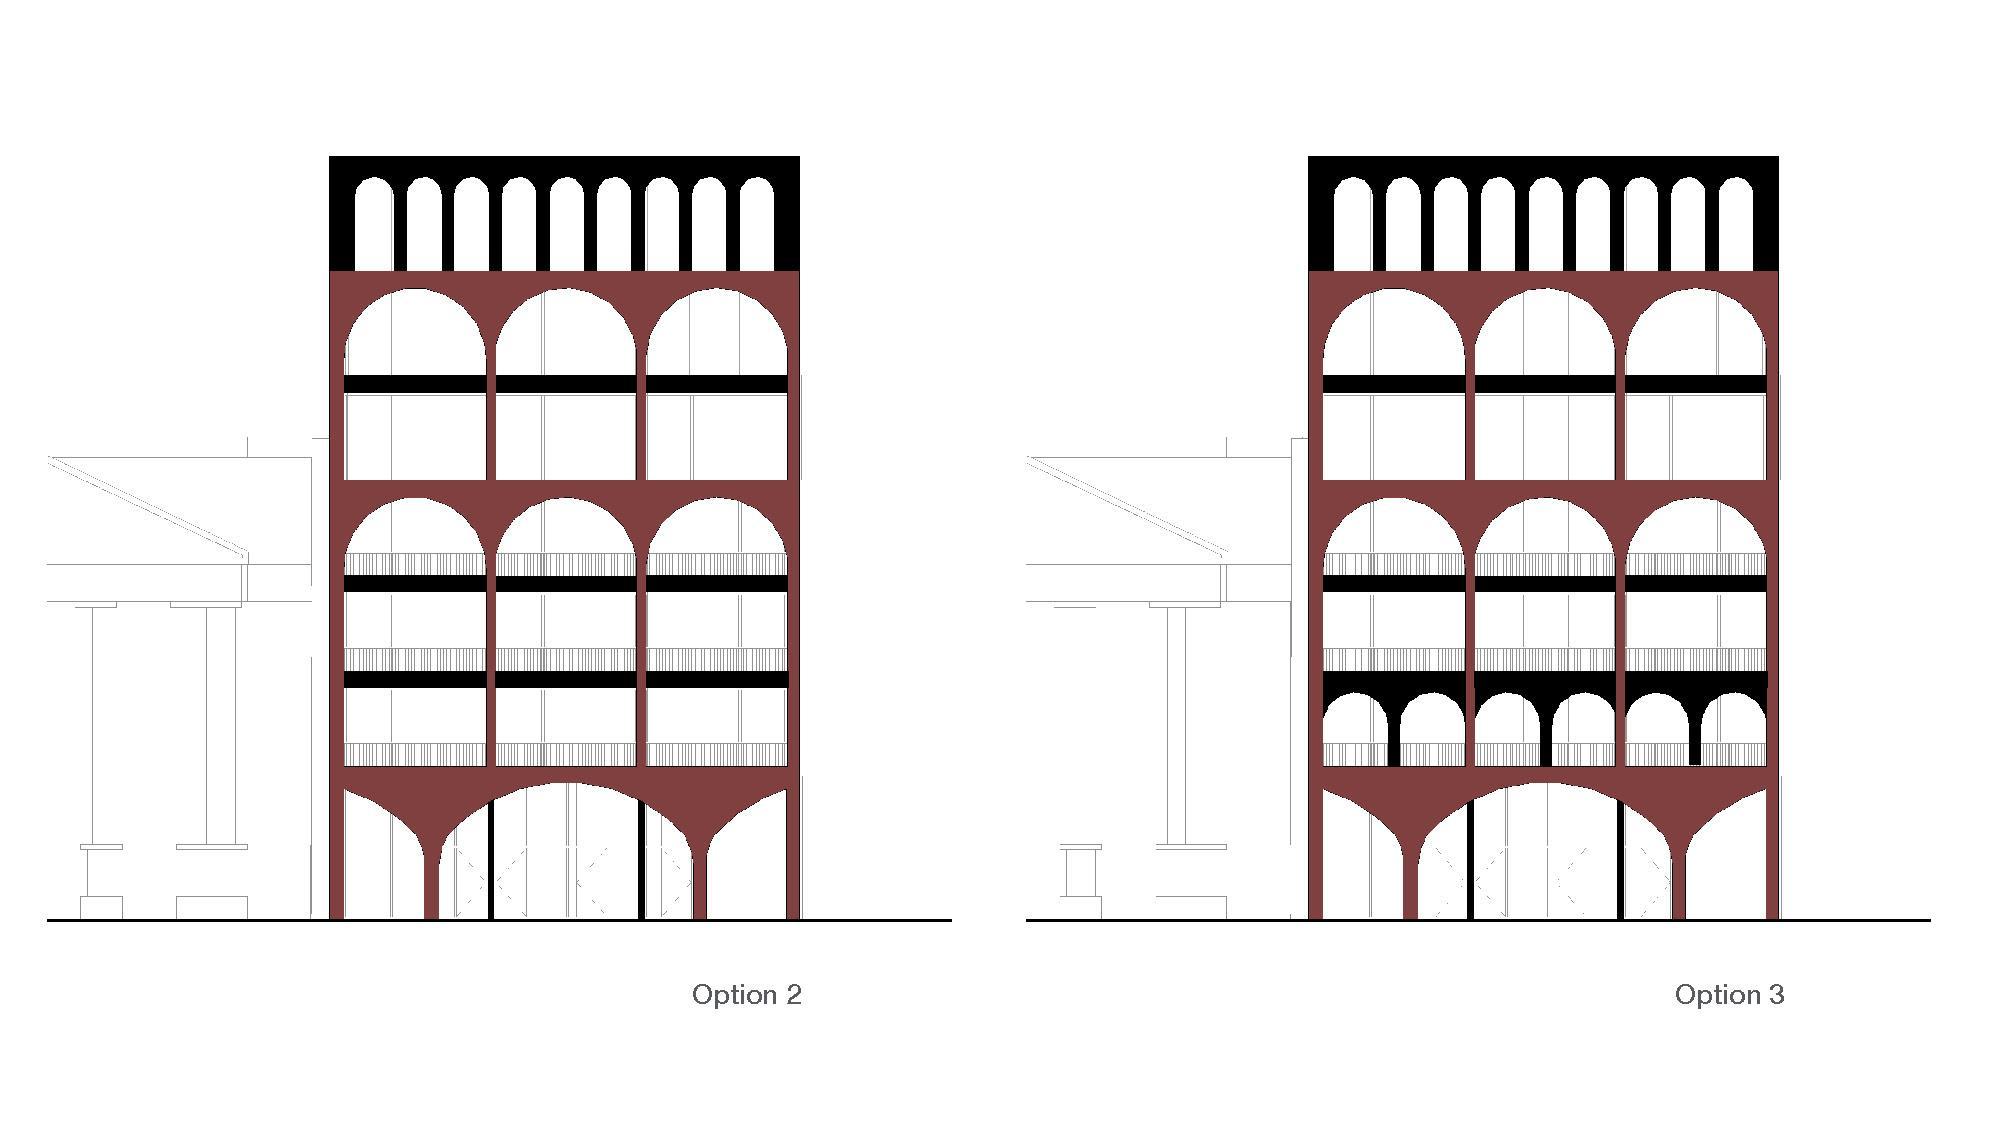 two options of facade designs for a red brick condo with arches